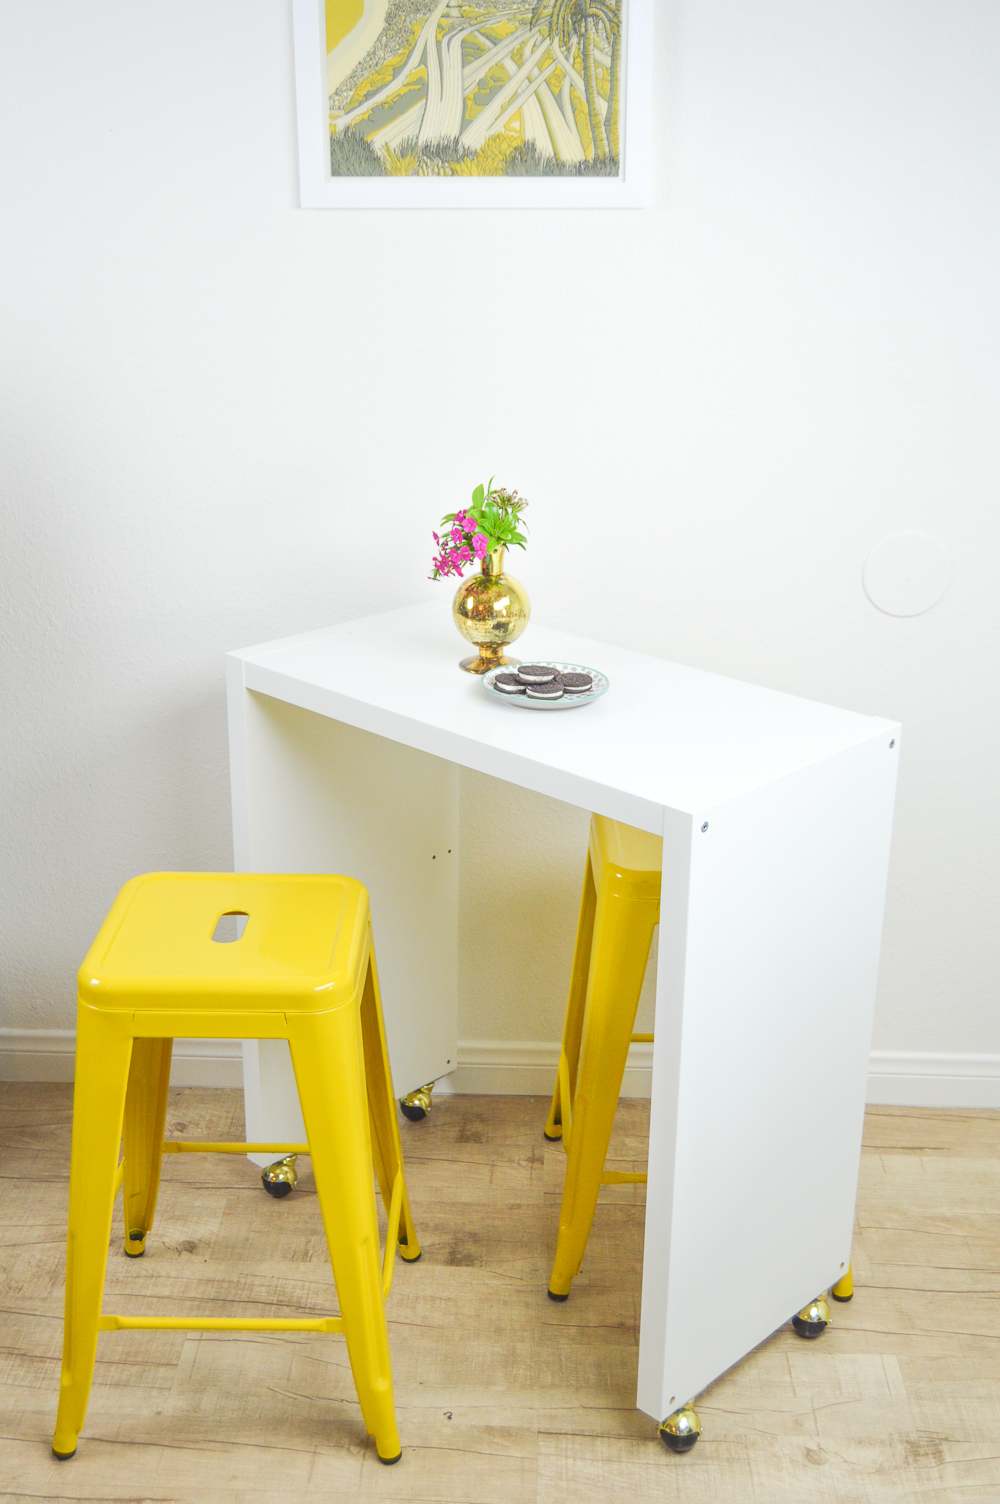 DIY rolling kitchen island from IKEA items